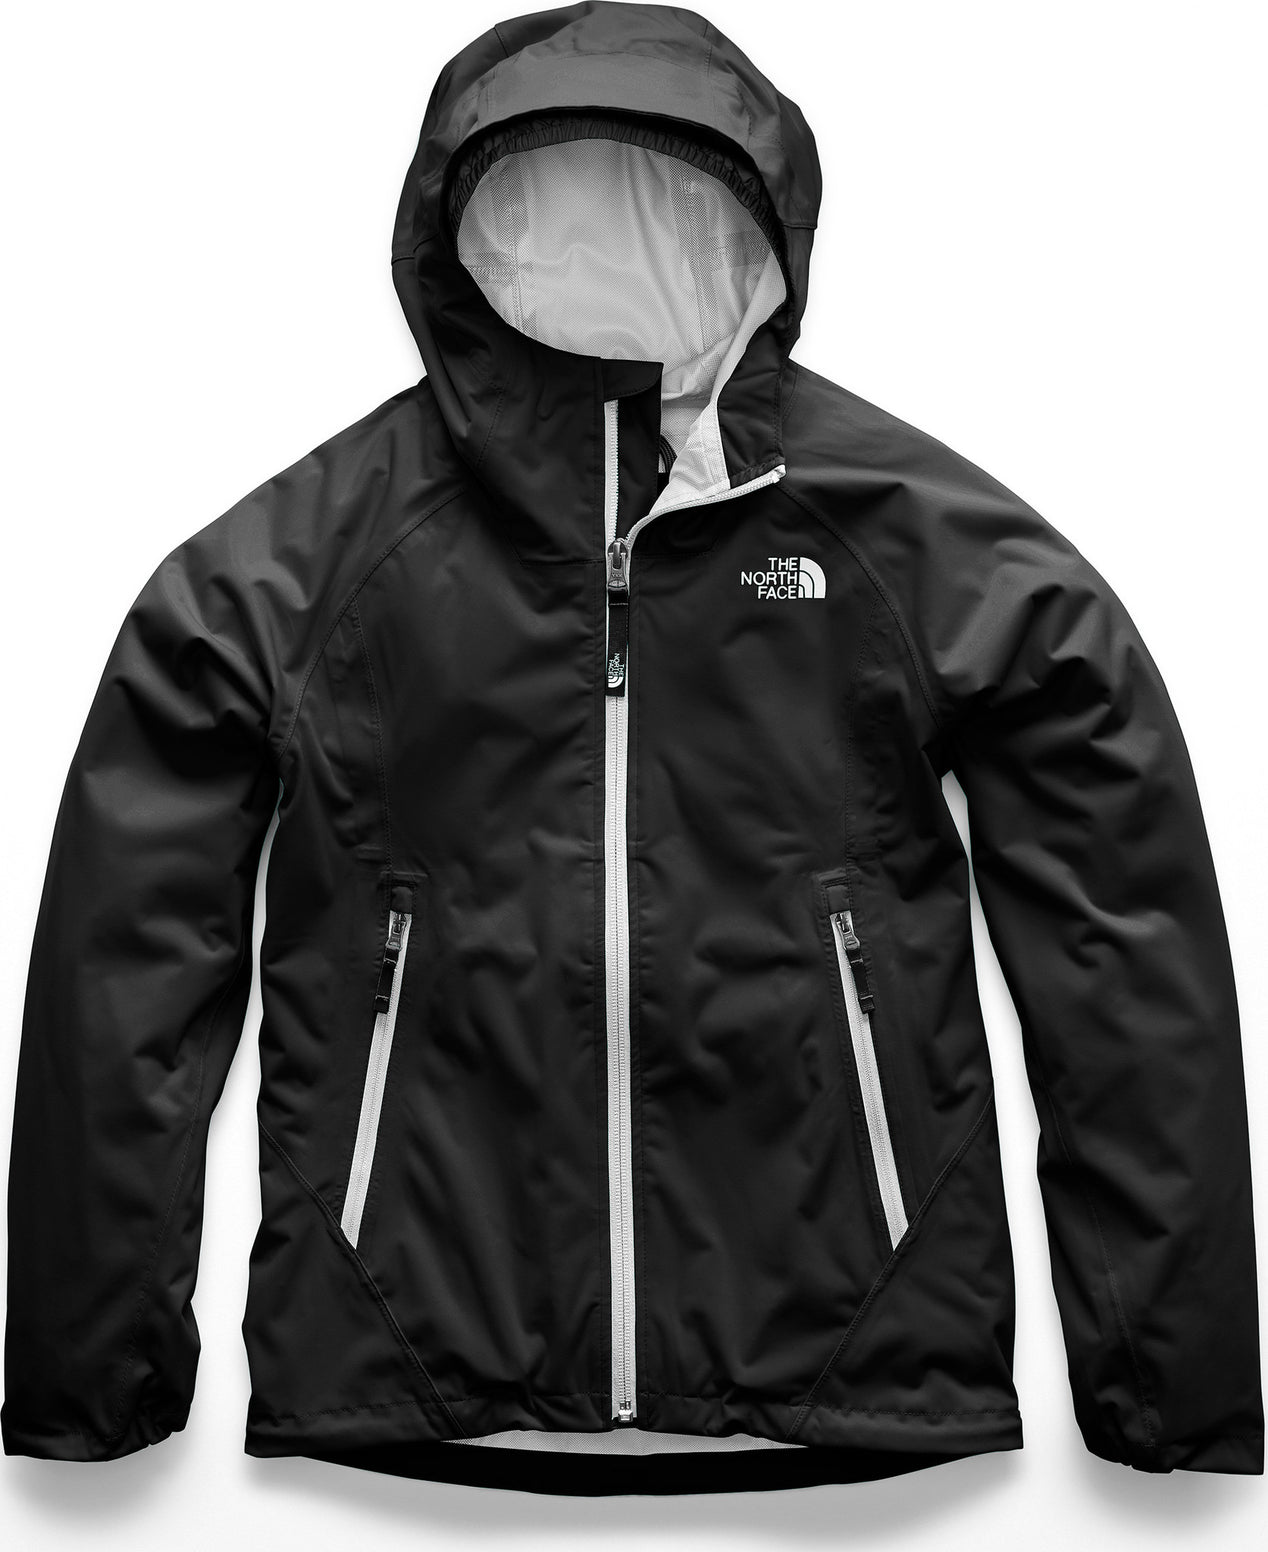 51bc68f37 Allproof Stretch Jacket - Girls